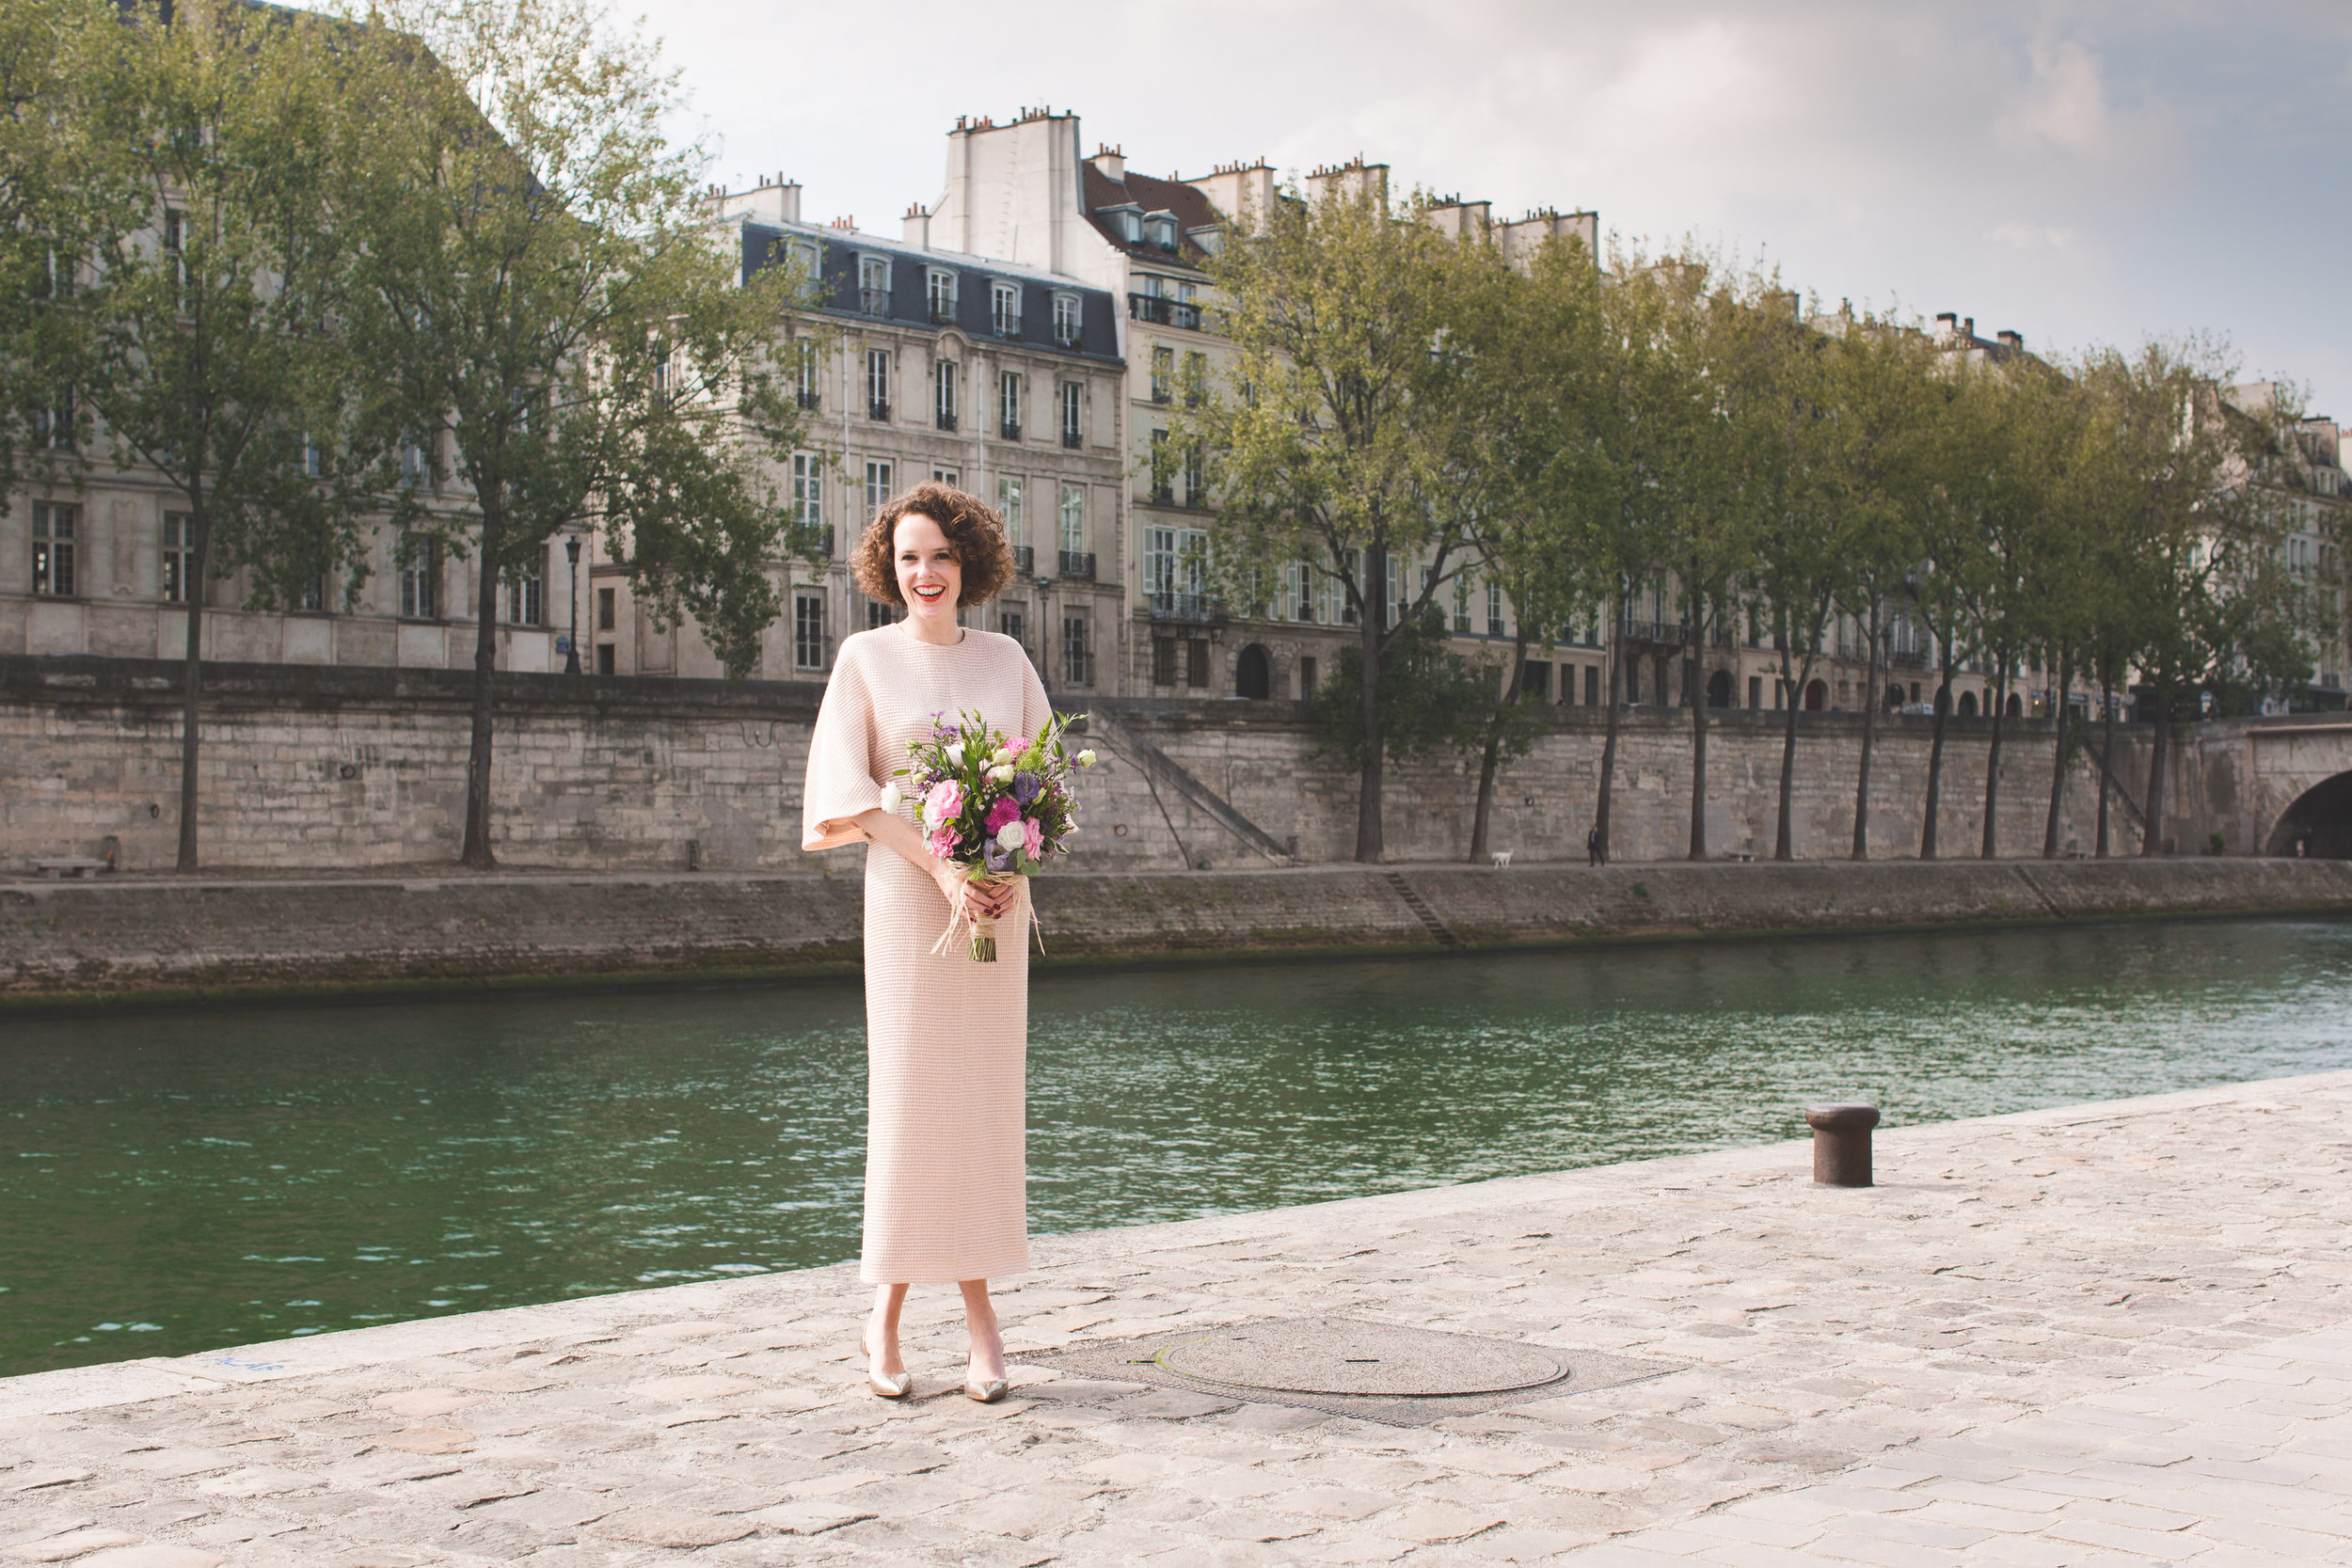 Emma&Nico_WeddingParis_by_UlaBlocksage-184.jpg